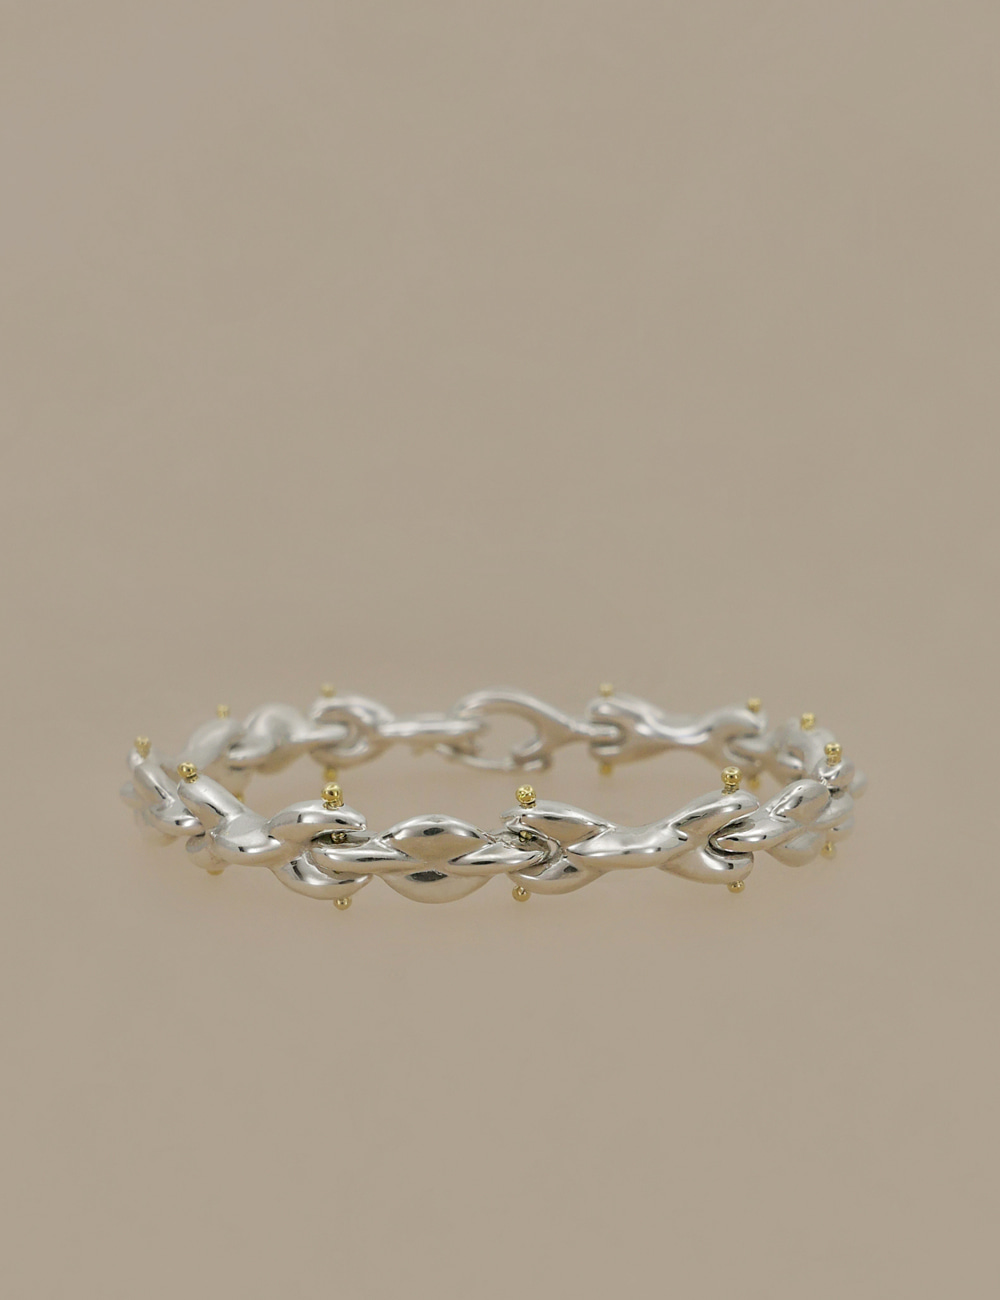 Mini Ball Form Bracelet